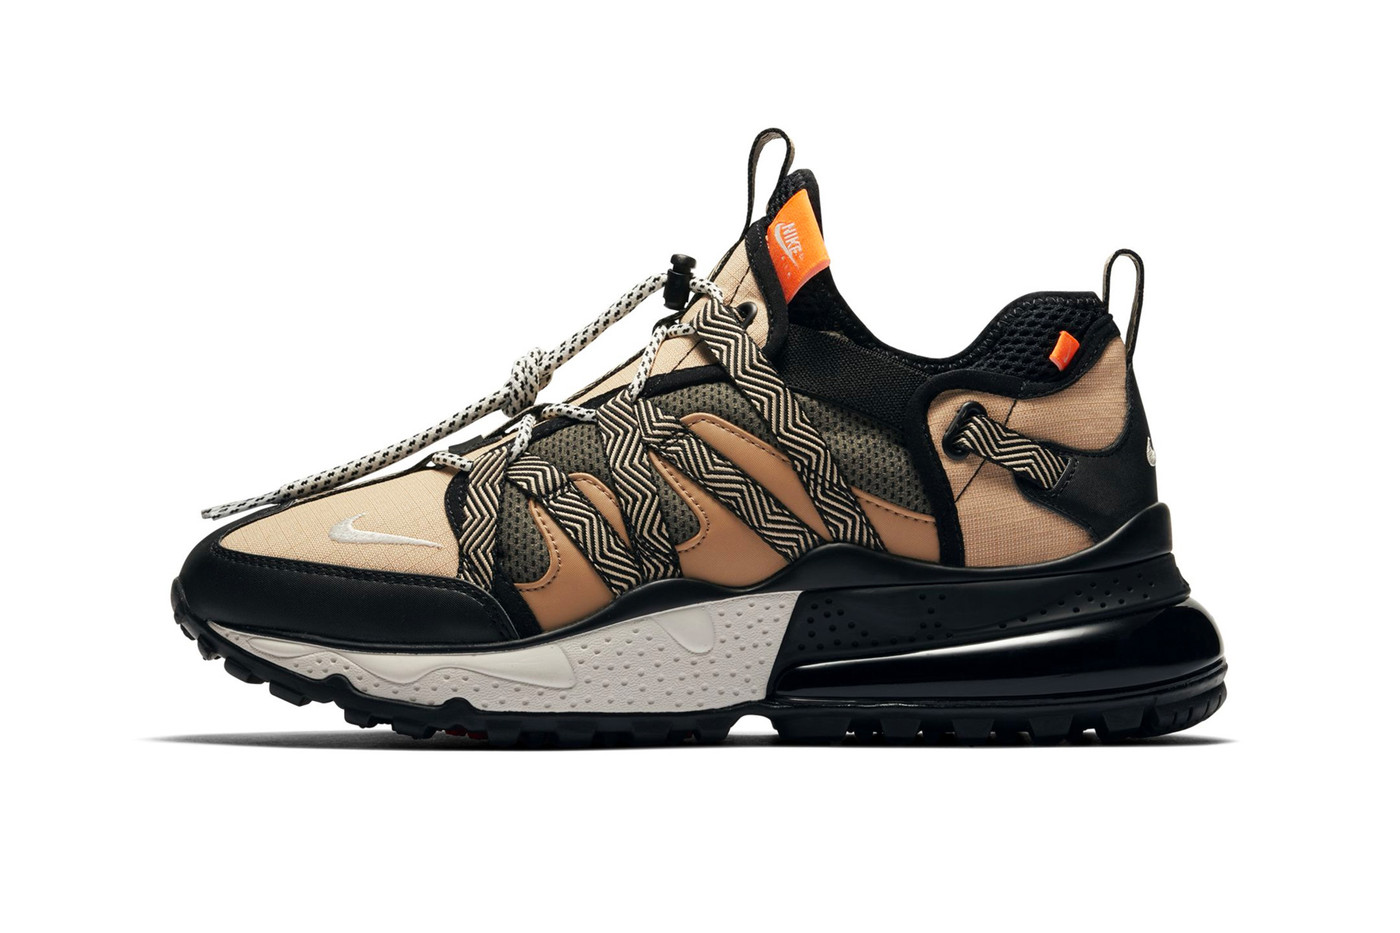 3d16f0a93e12 Nike s Air Max 270 Bowfin Flexes in